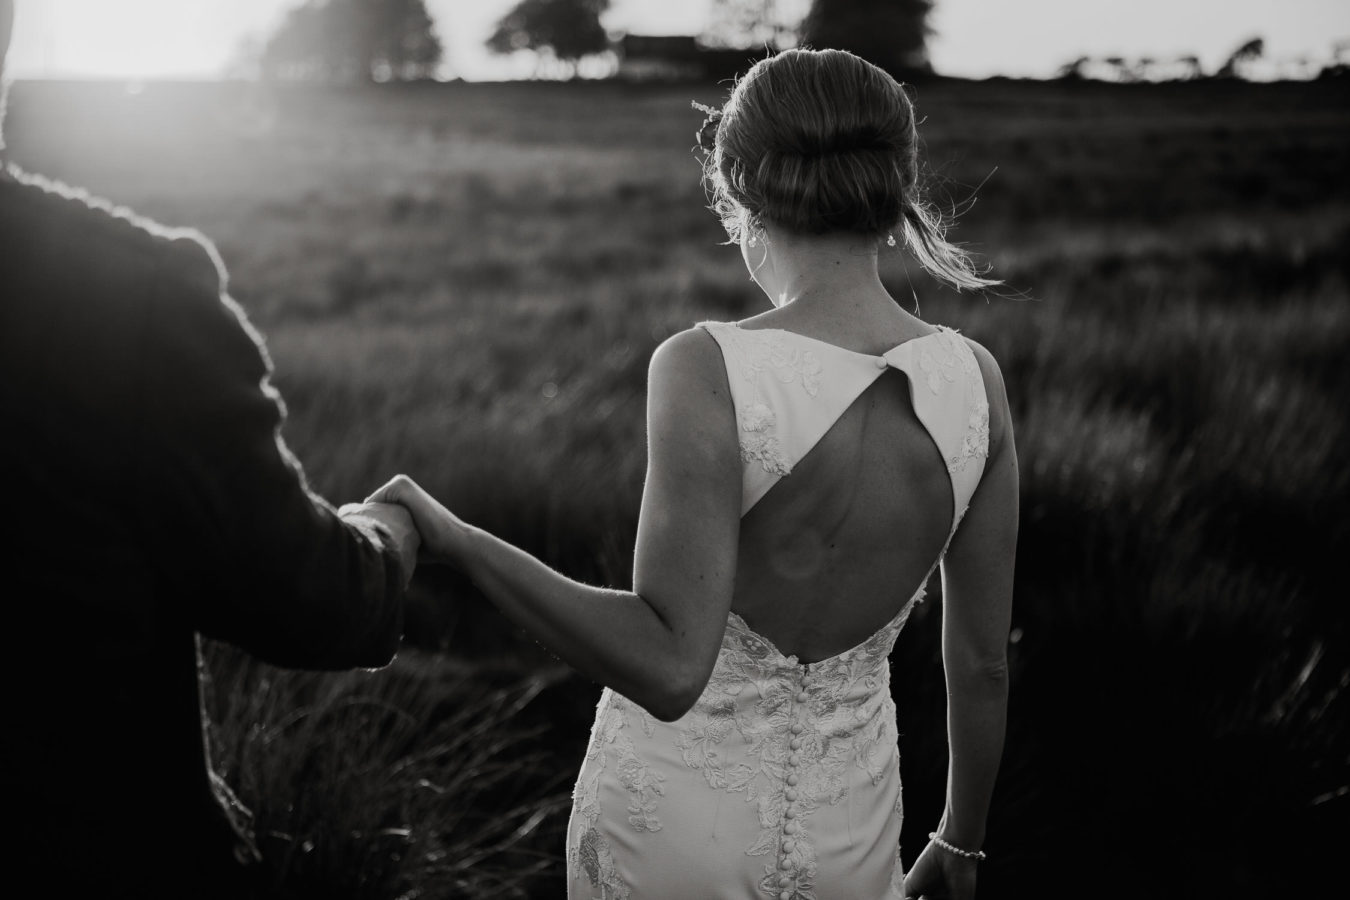 Bride holding grooms hand walking through field in black and white